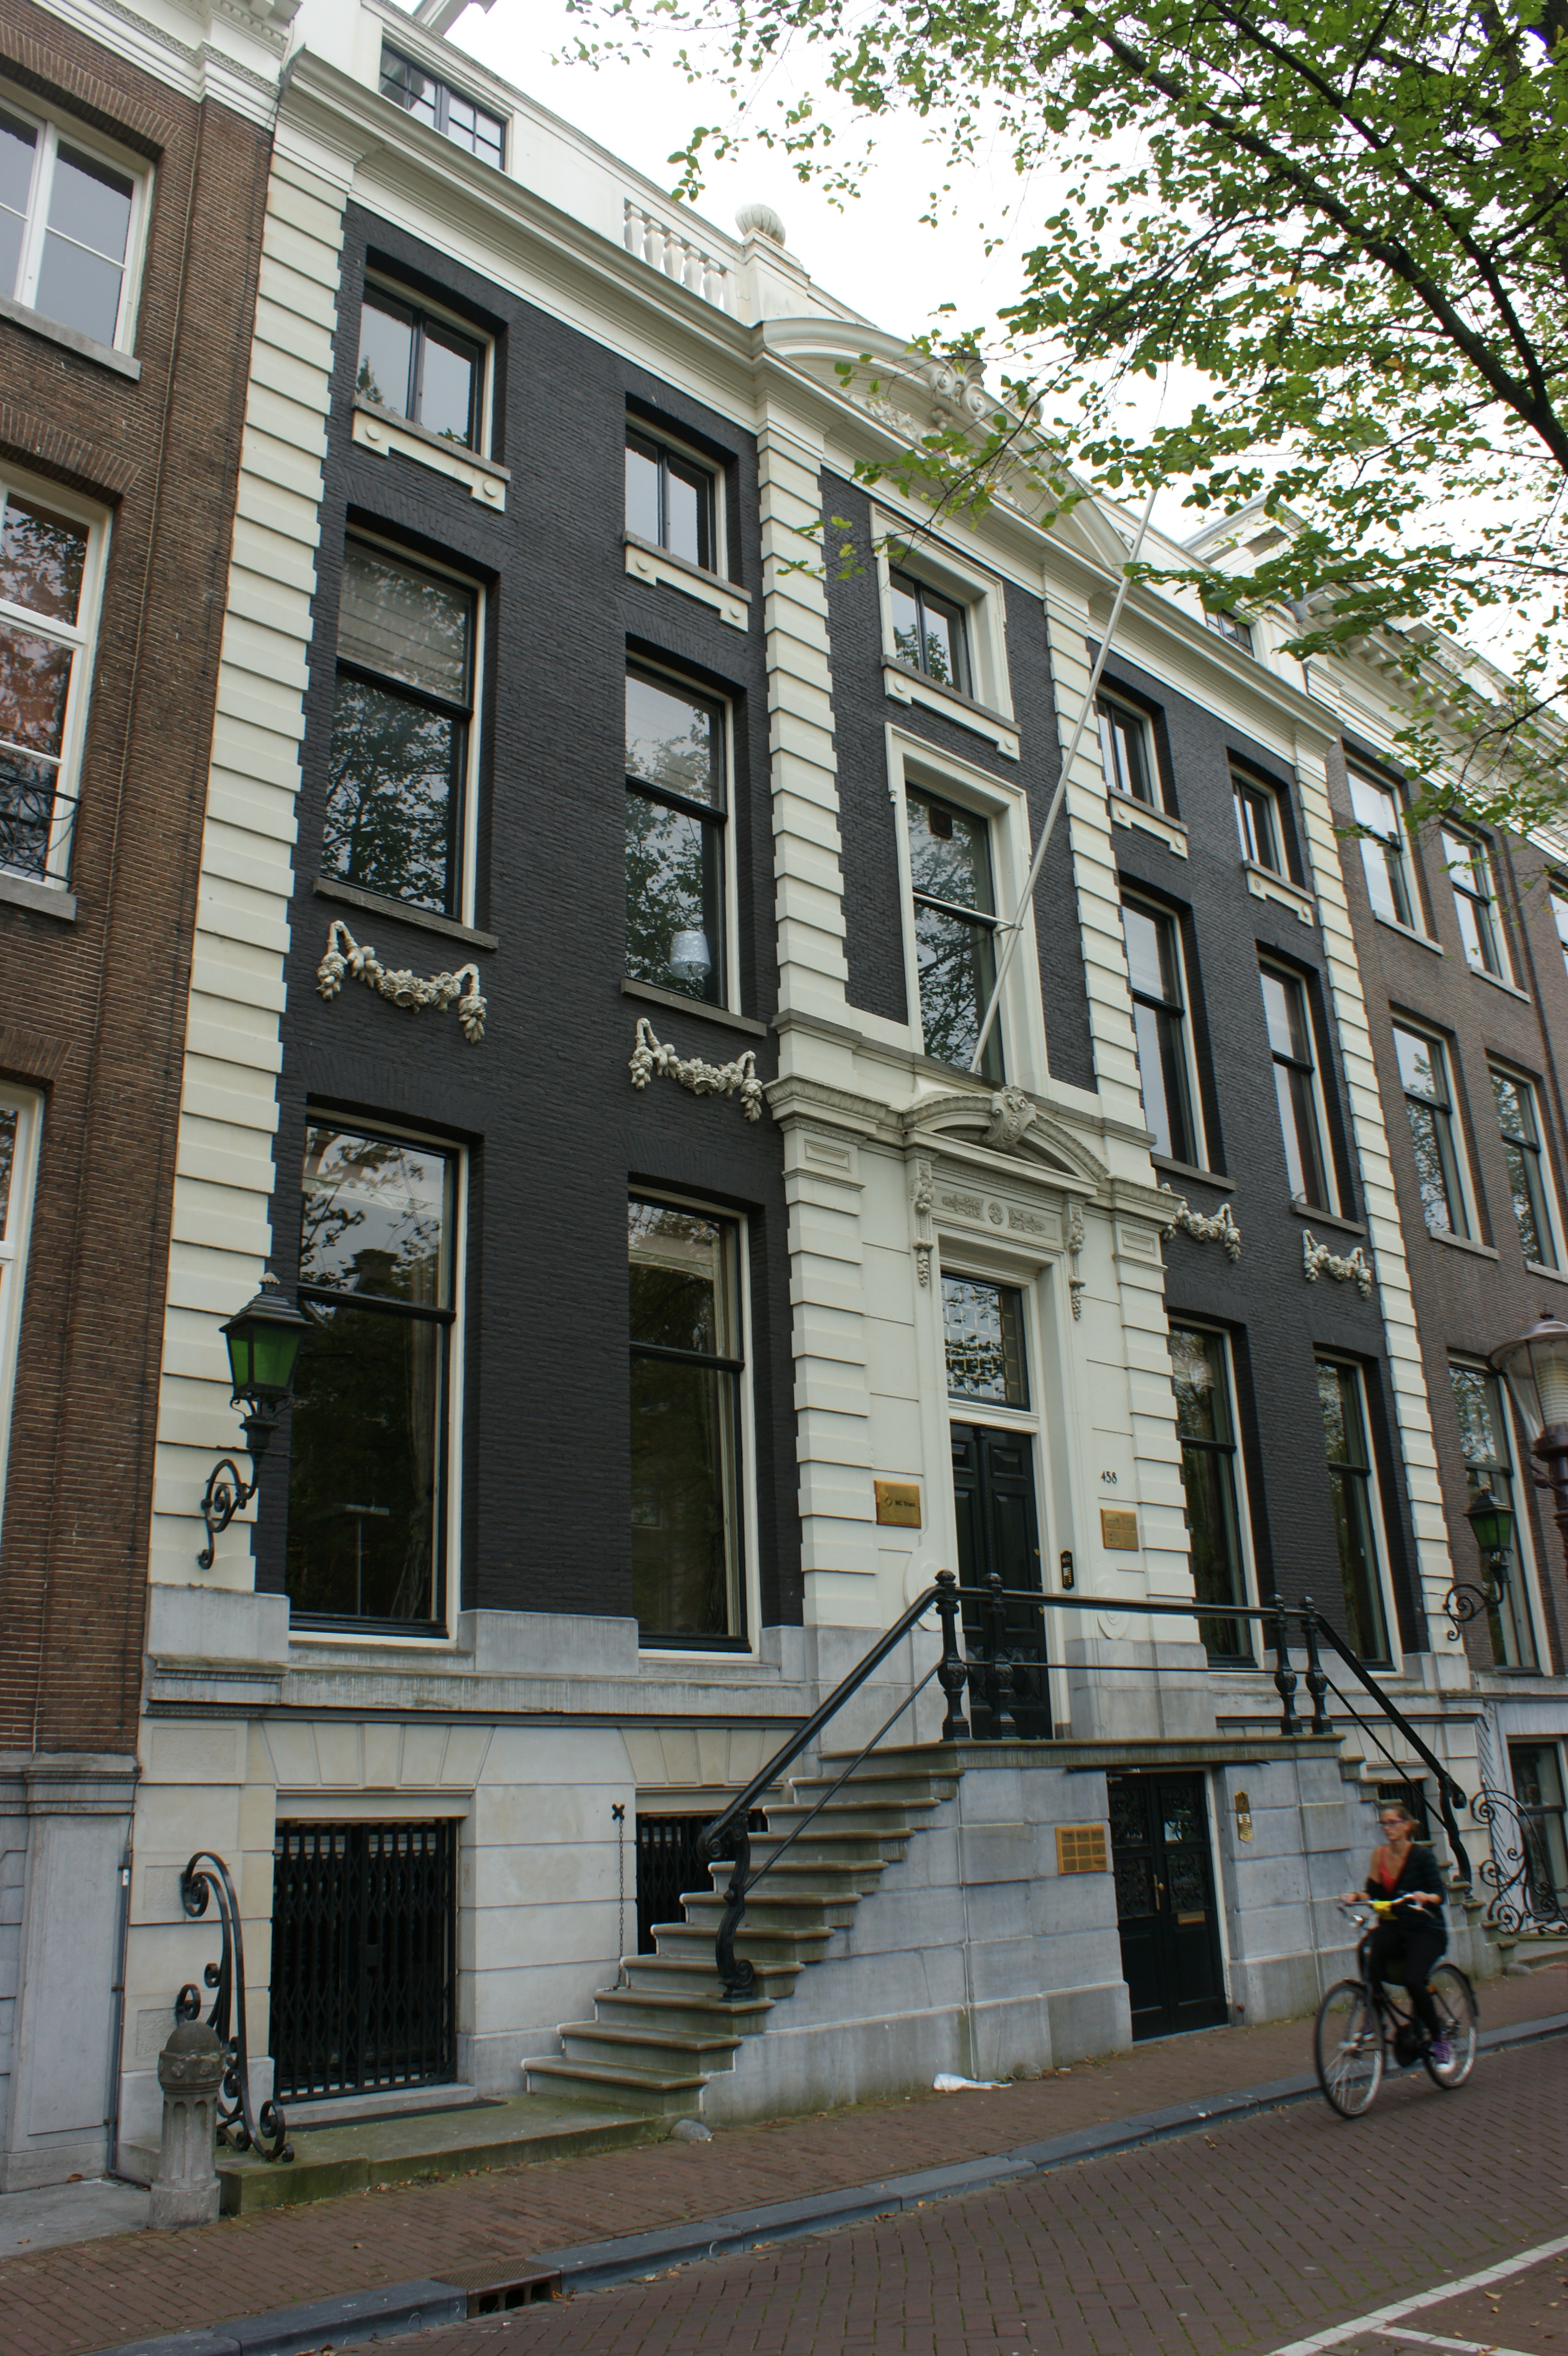 Jacques goudstikker wikiwand for Herengracht amsterdam